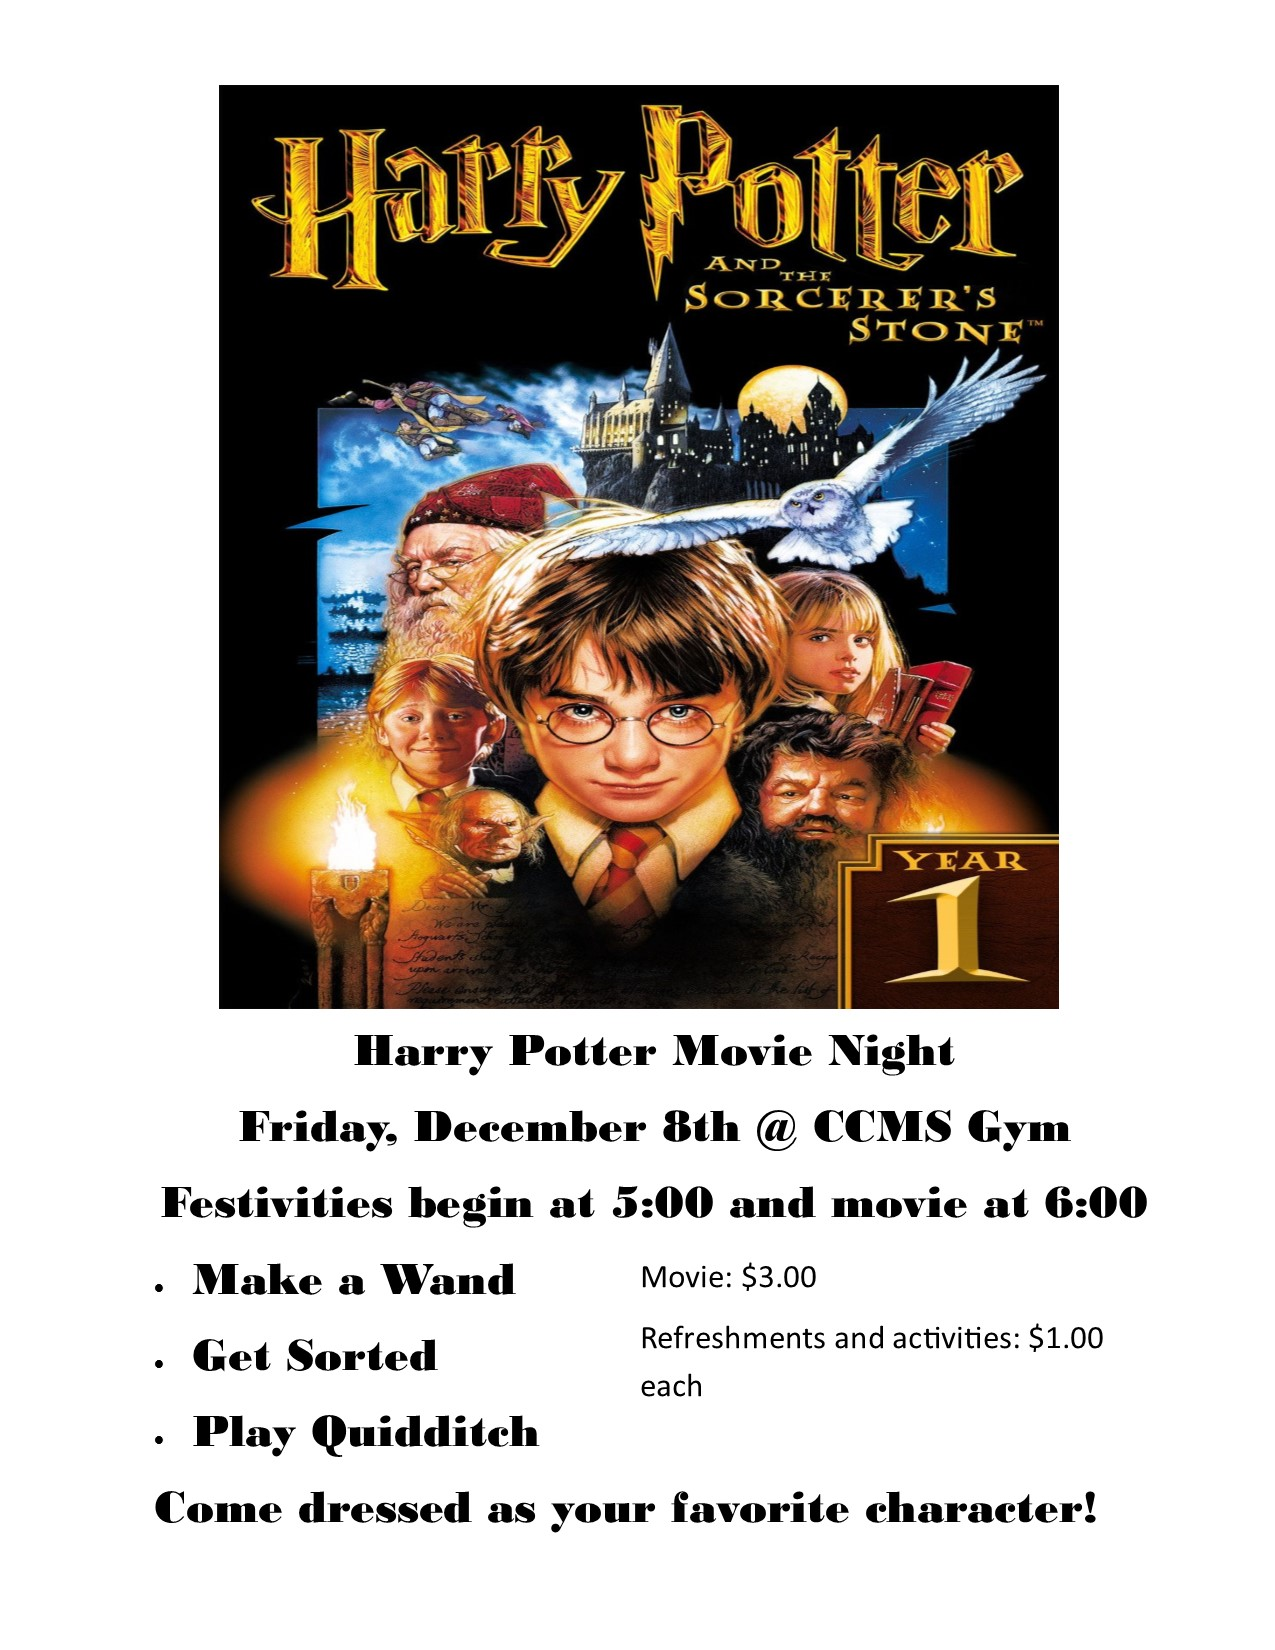 Join us for Harry Potter Movie Night on Friday at CCMS!